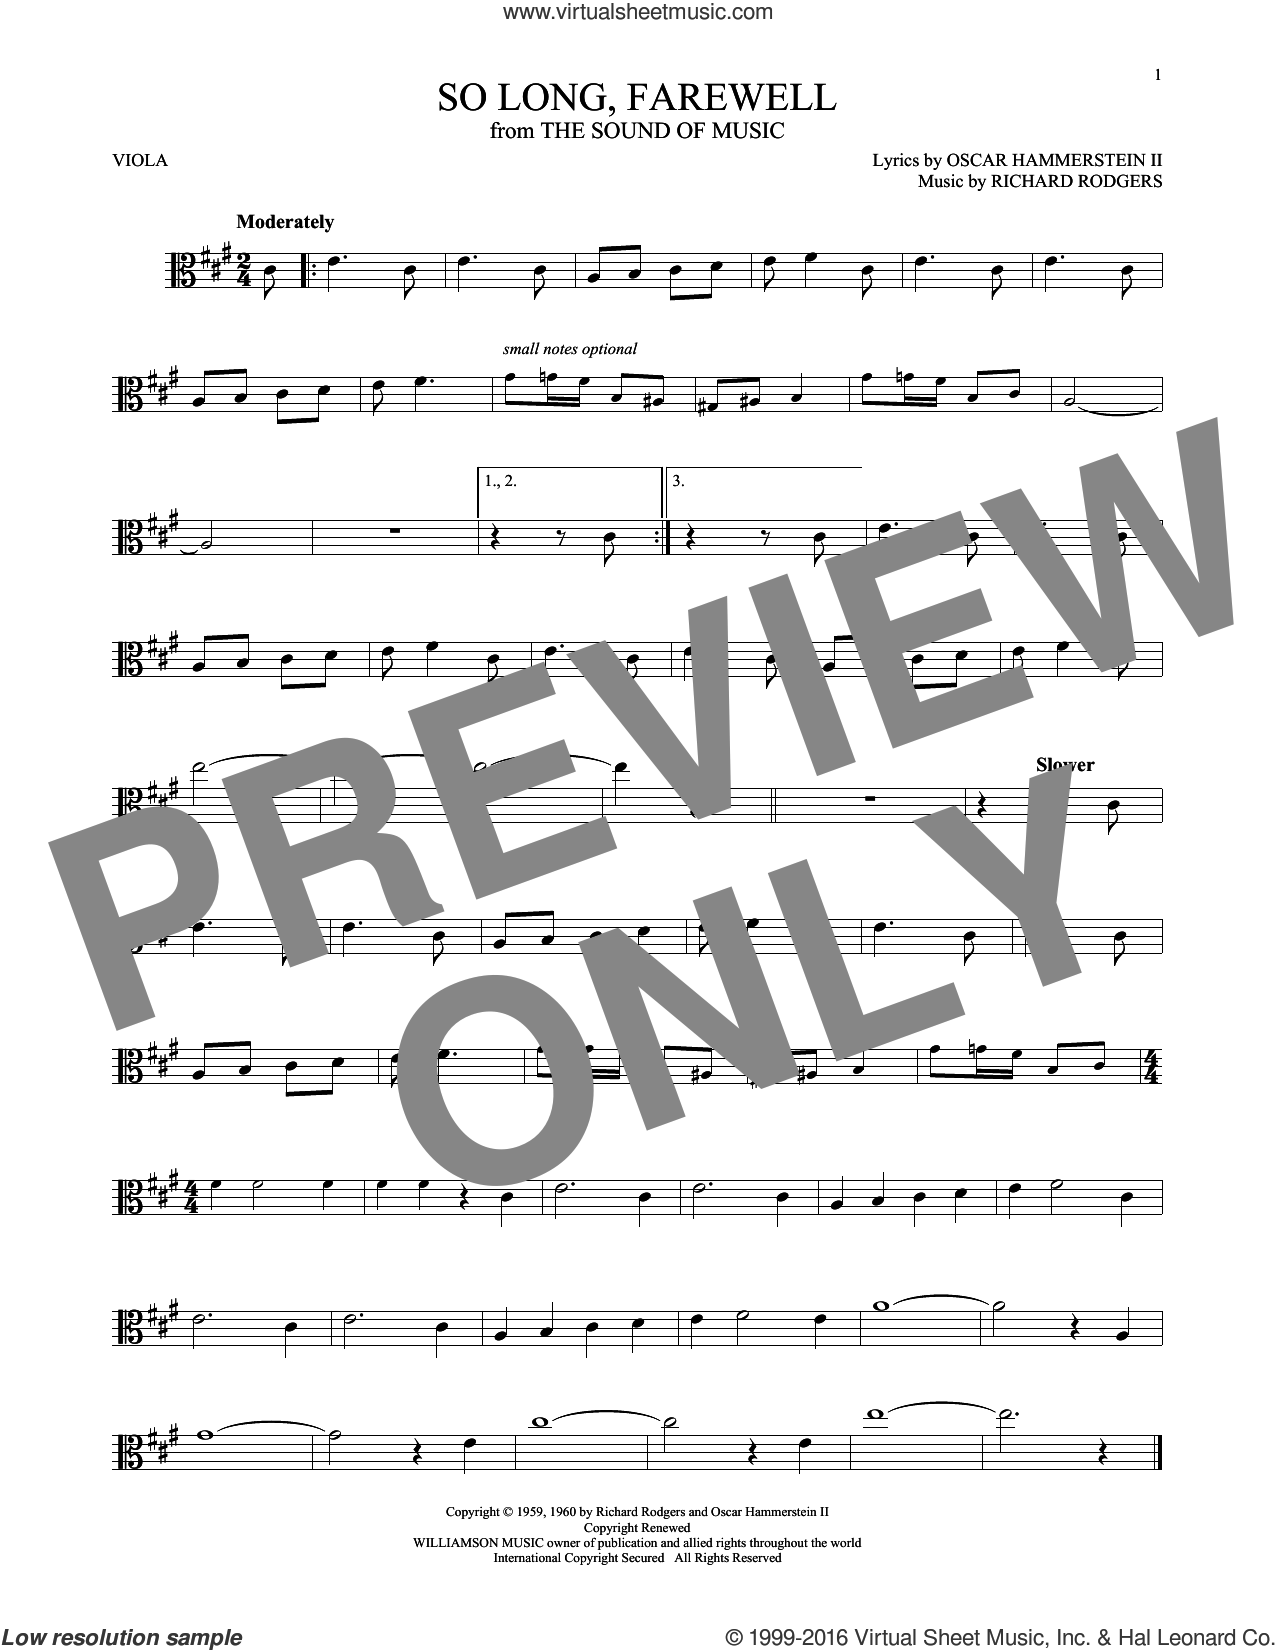 So Long, Farewell sheet music for viola solo by Rodgers & Hammerstein, Oscar II Hammerstein and Richard Rodgers, intermediate viola. Score Image Preview.